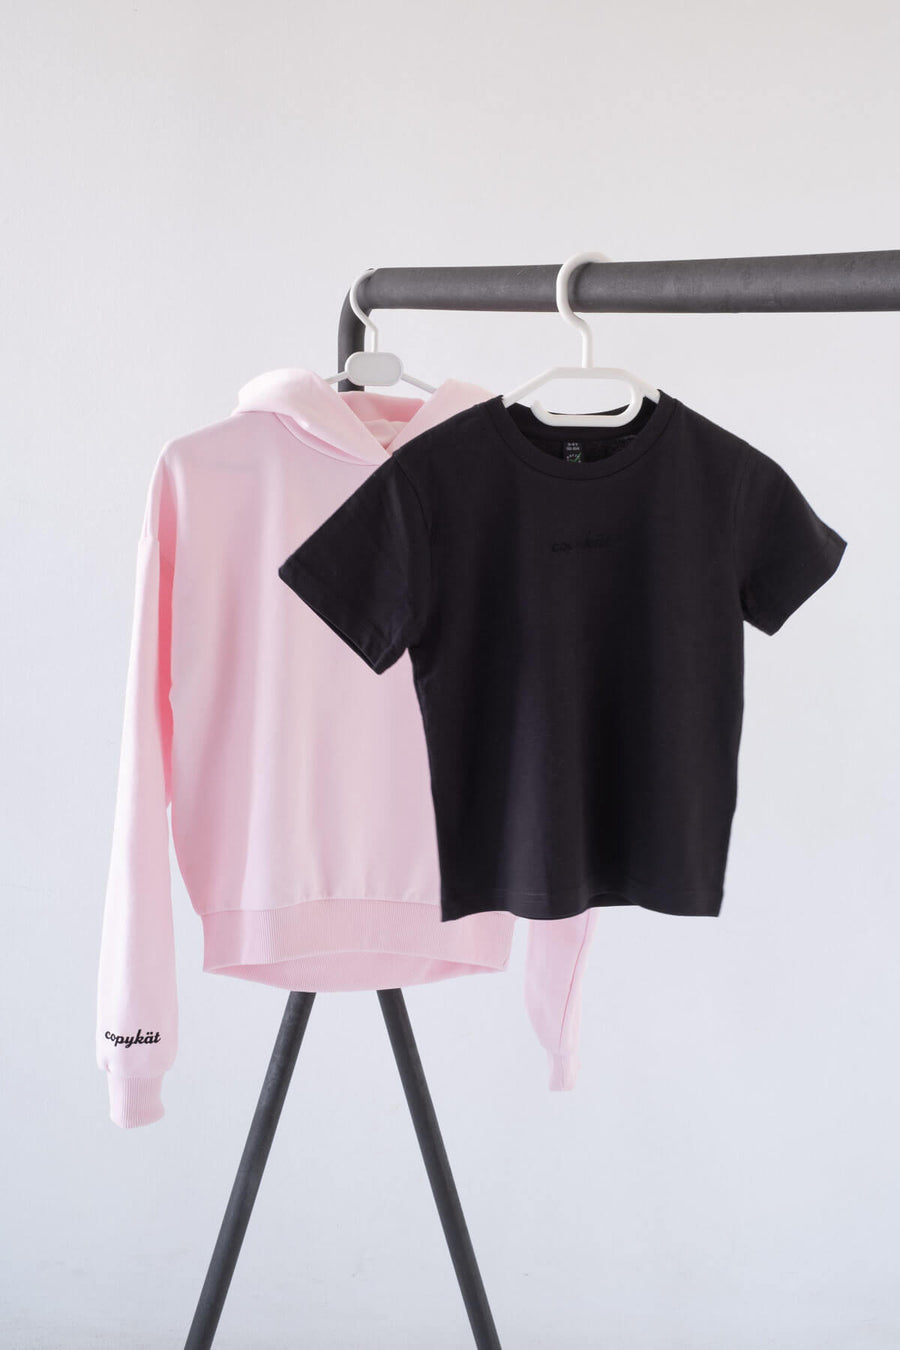 COPYKÄT Junior classic jersey t-shirt 3-4 YRS - Black and pink hoodie